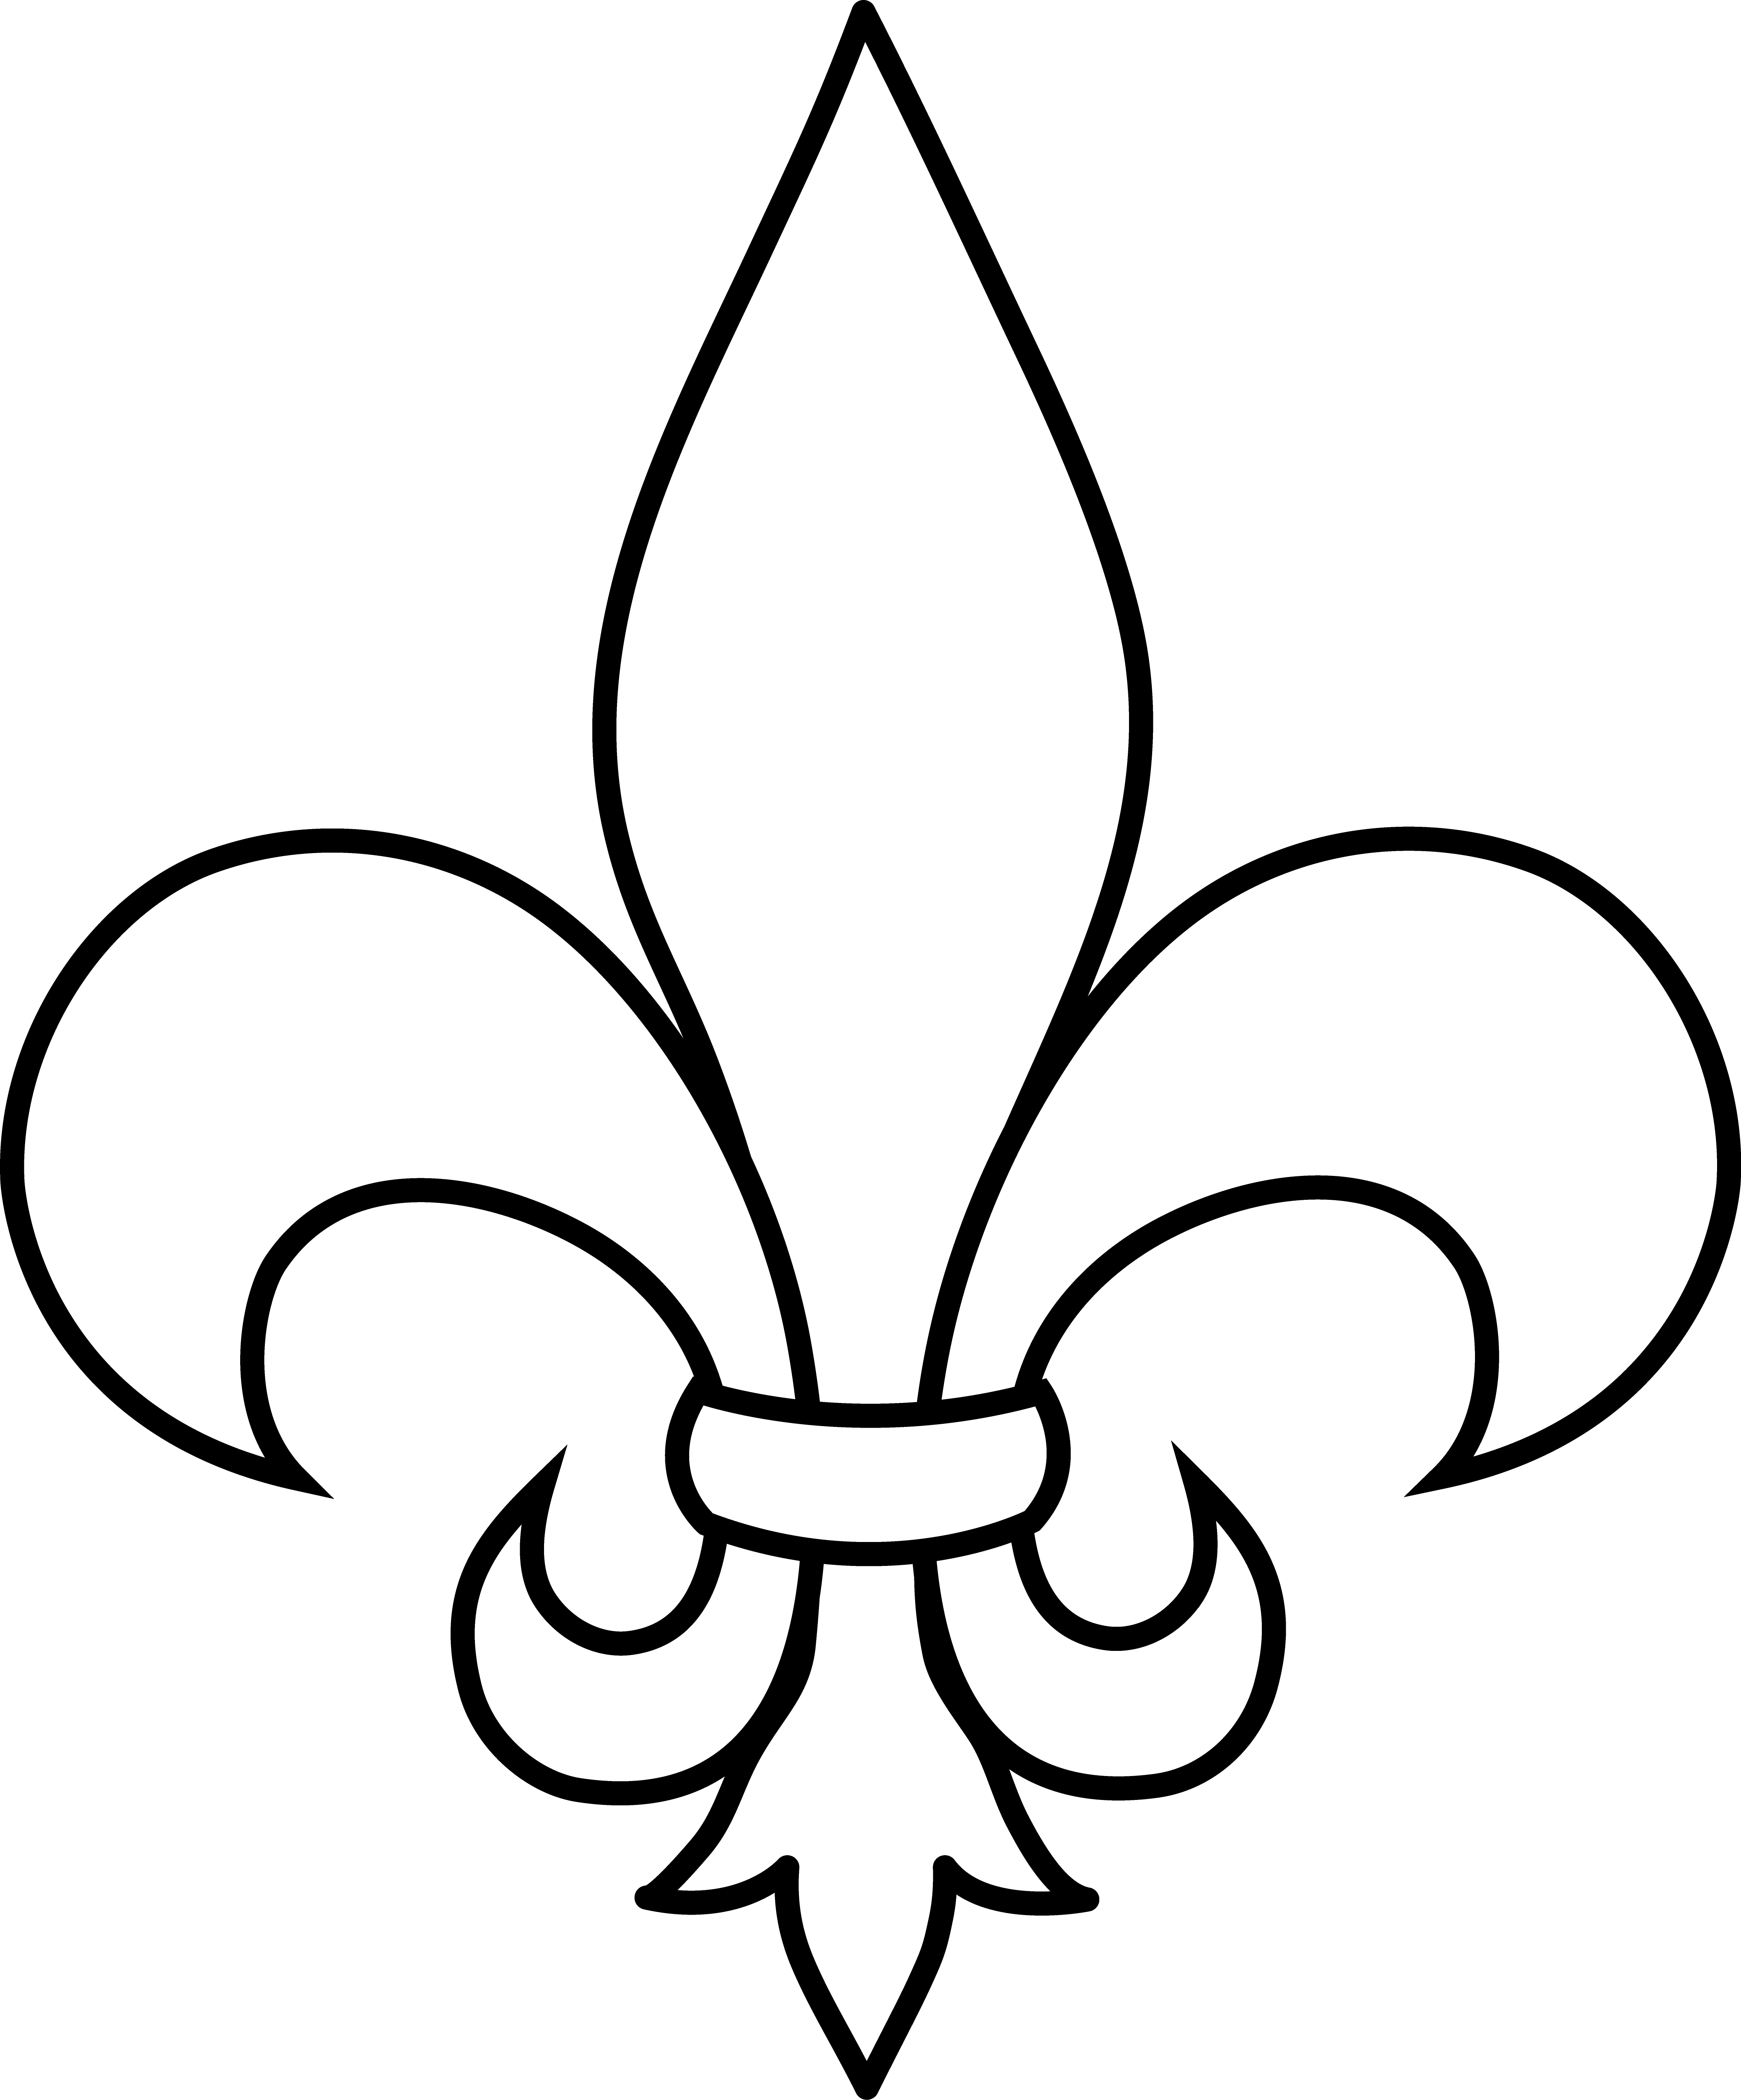 Free clipart fleur de lis jpg black and white download frrench free clip art | Black and White Fleur De Lis Outline - Free ... jpg black and white download